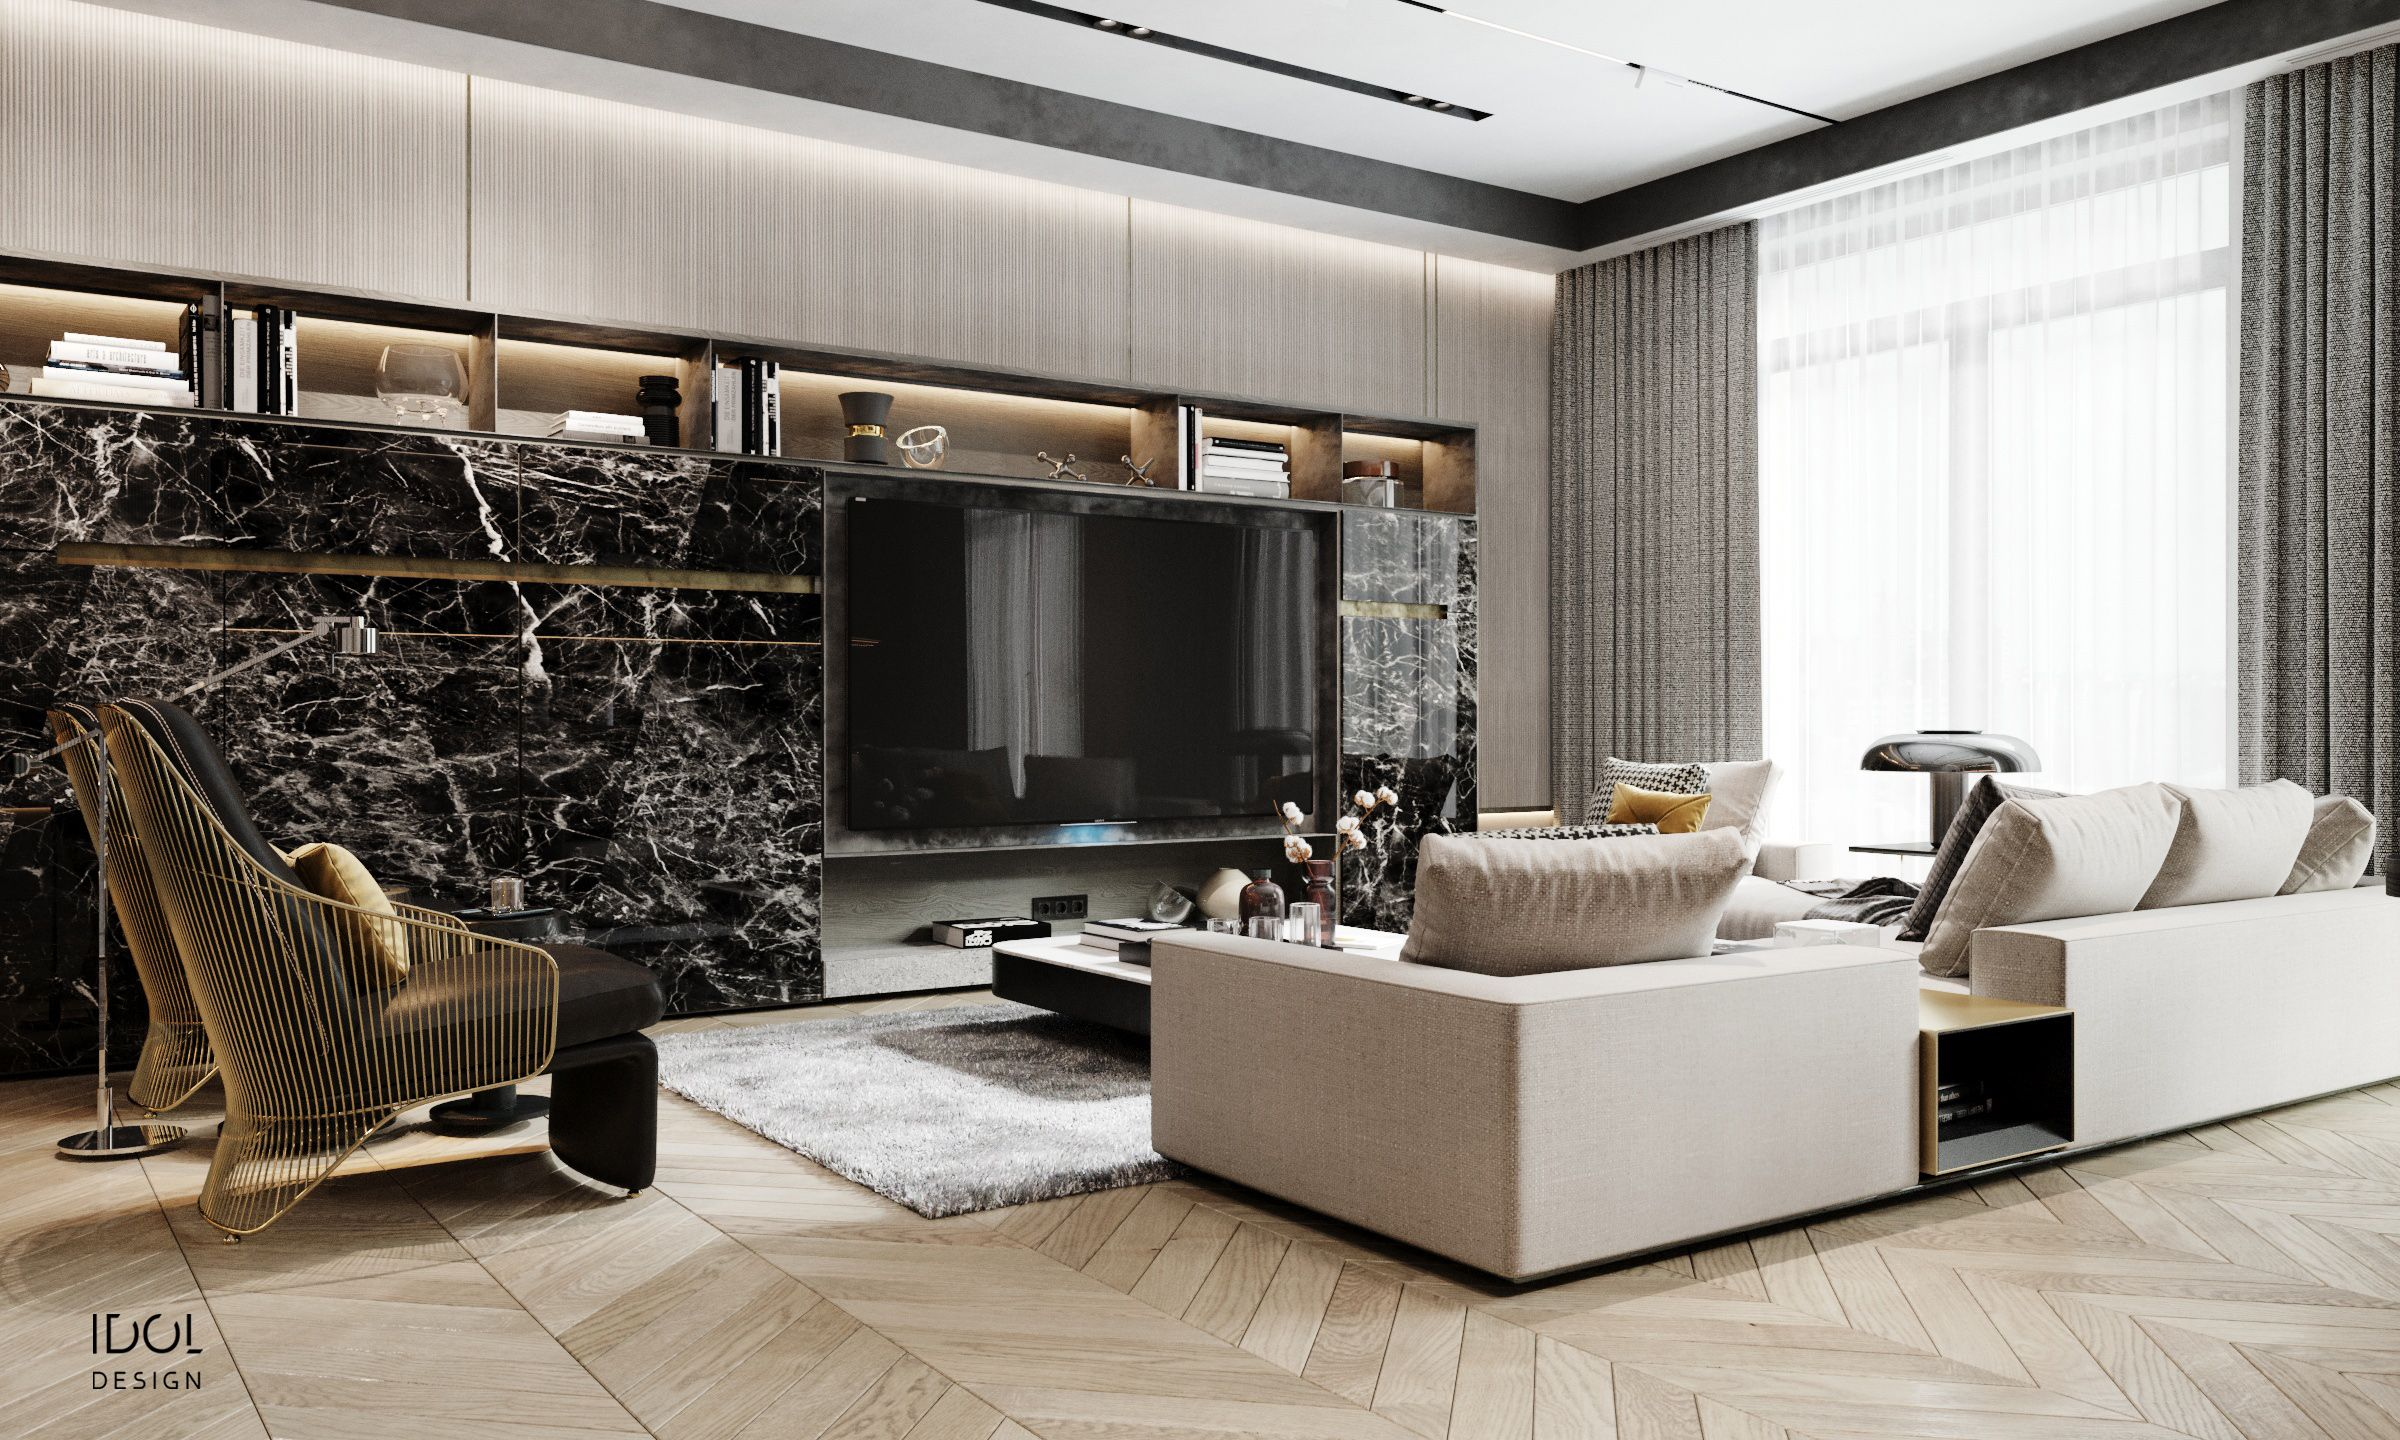 Modern Luxury Living Room With Tv Wall The Chairs And The Minotti Sofa Fit Perfectly Krestovskiy De Luxe Luxury Design Luxurious Bedrooms Design Suites